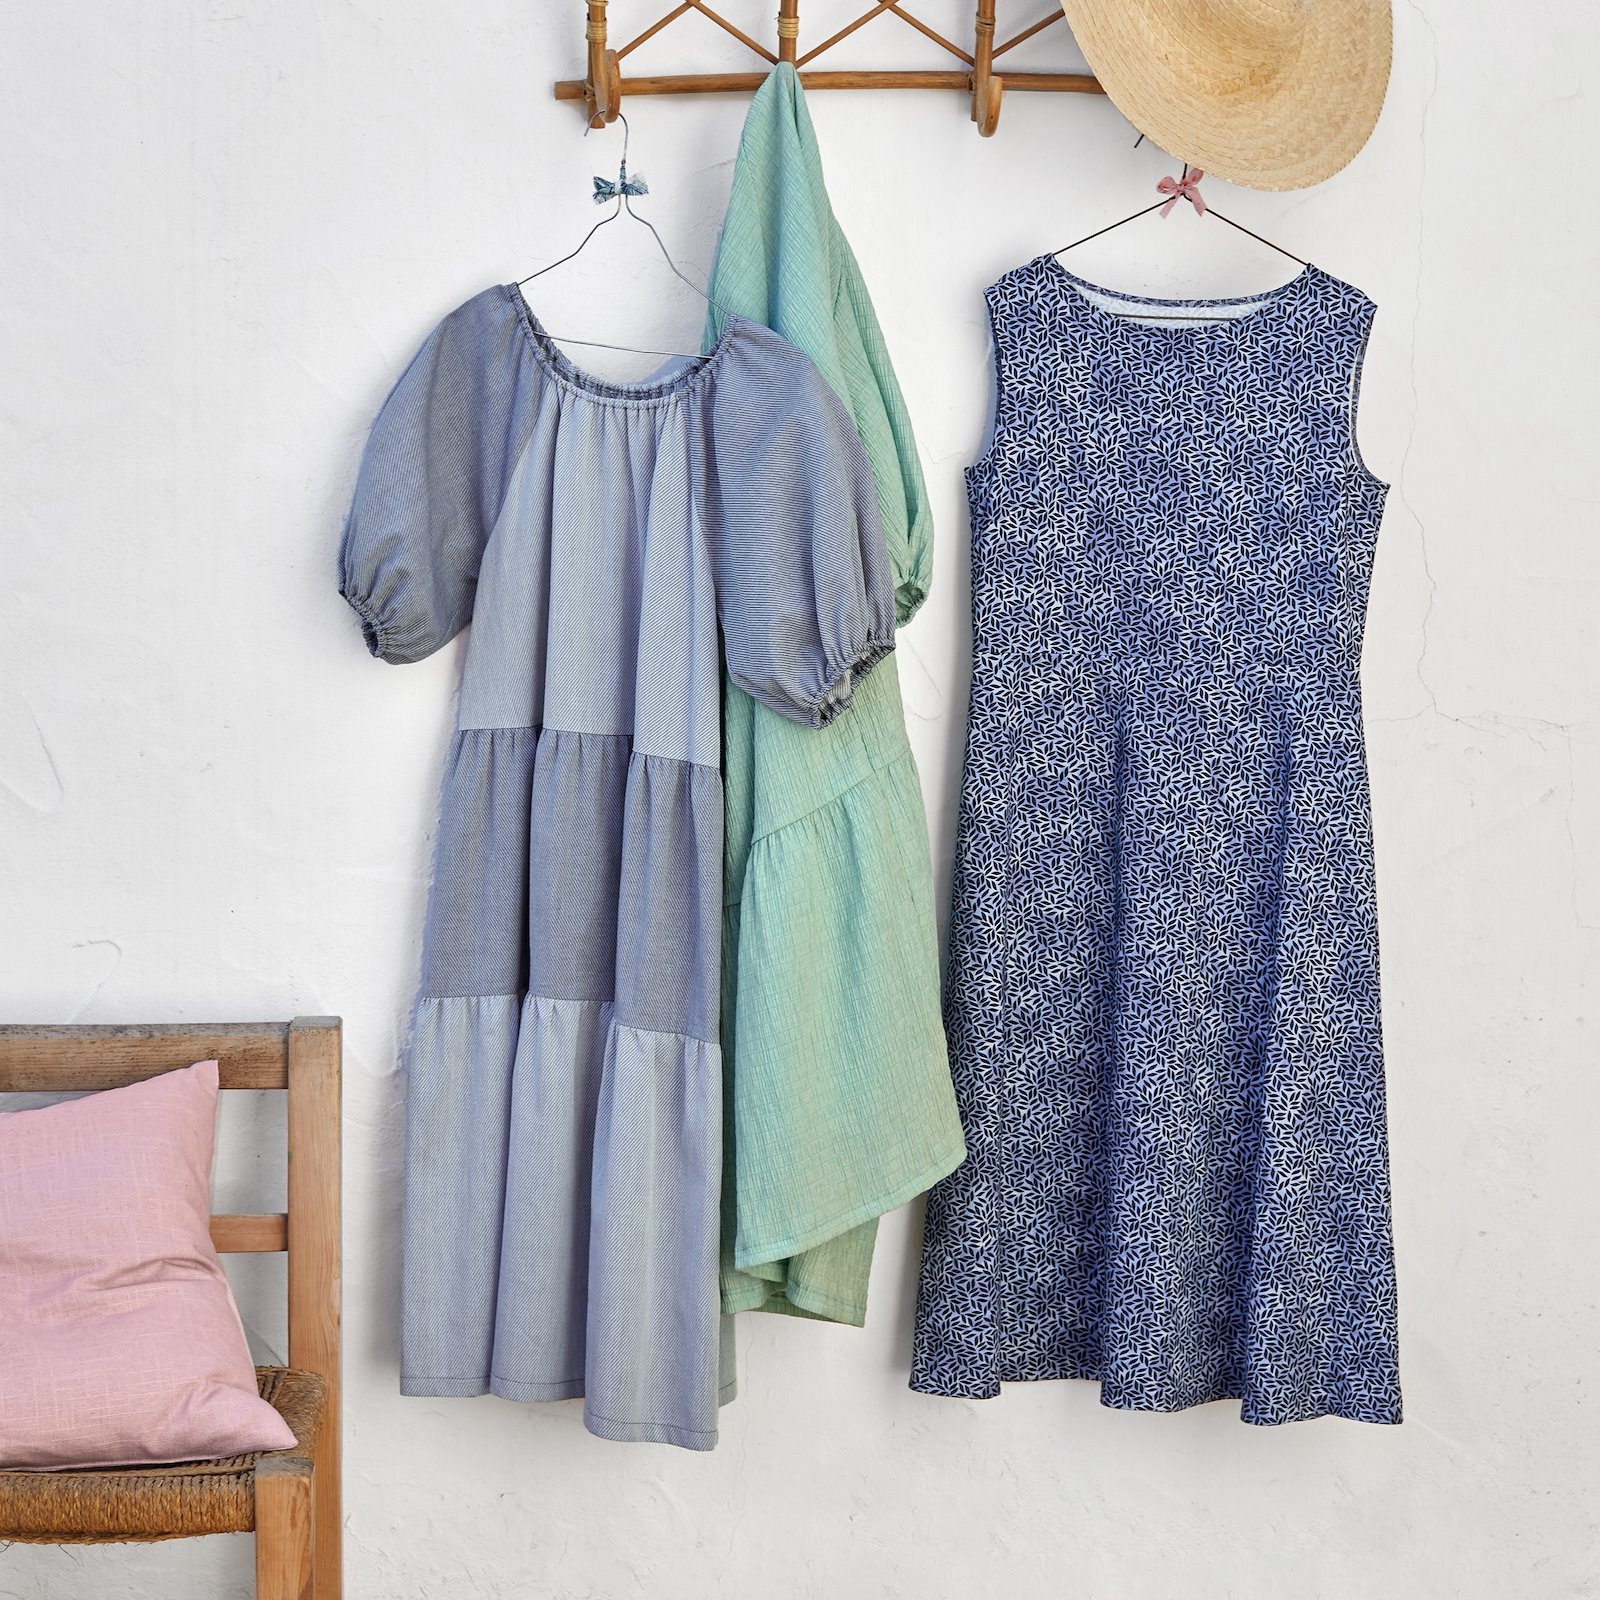 Dress with a full skirt, 34/6 p23168_852356_501860_560261_90000000_p23154_272689_bundle